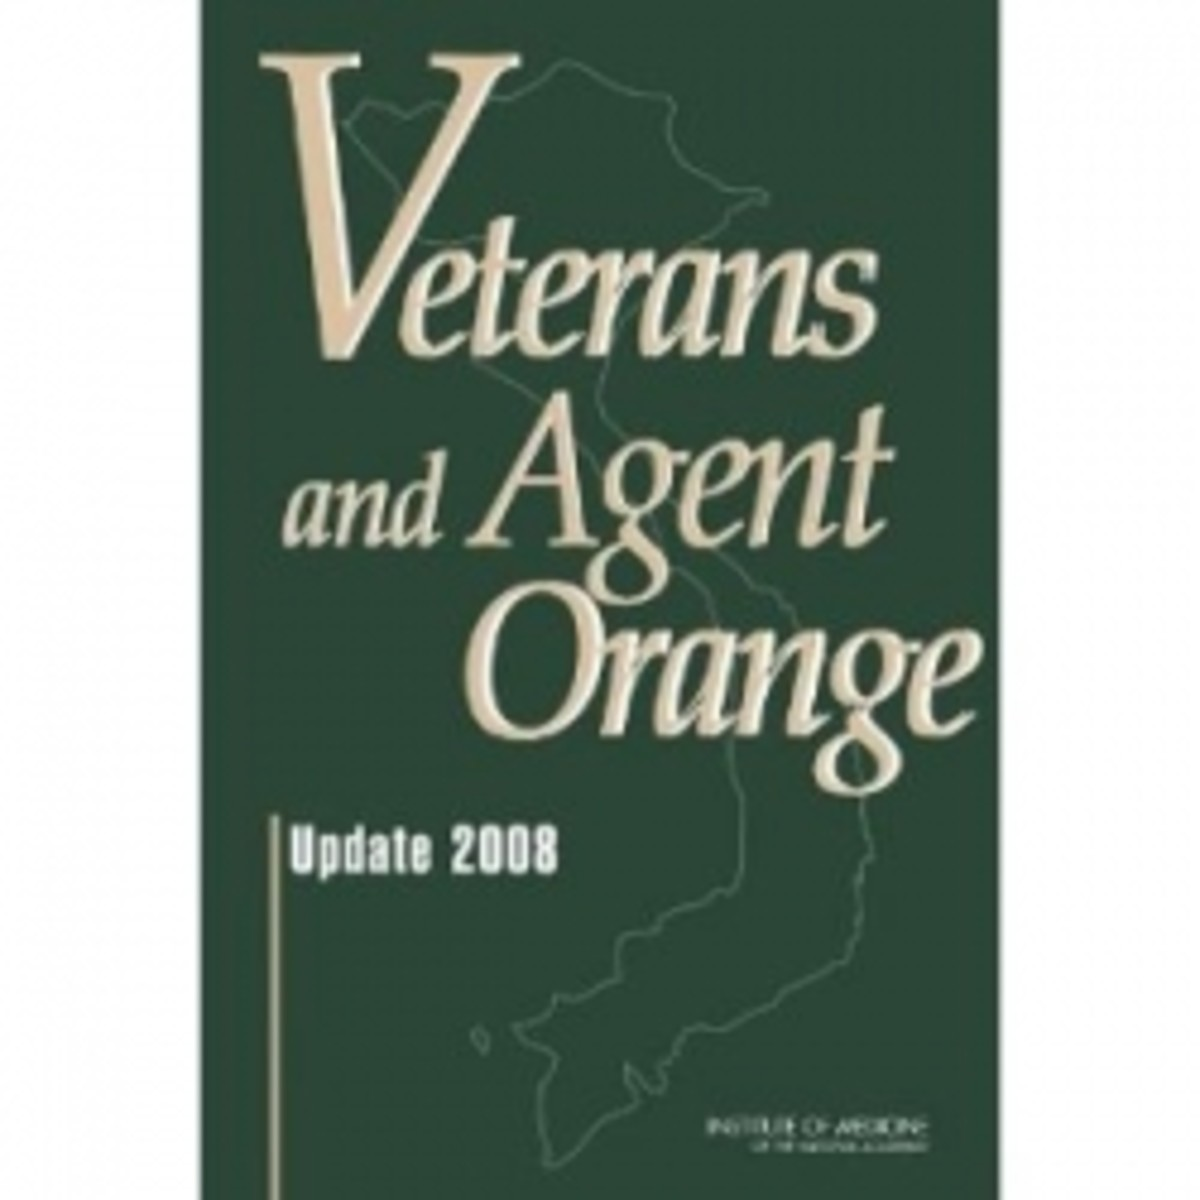 Veterans-and-Agent-Orange-book